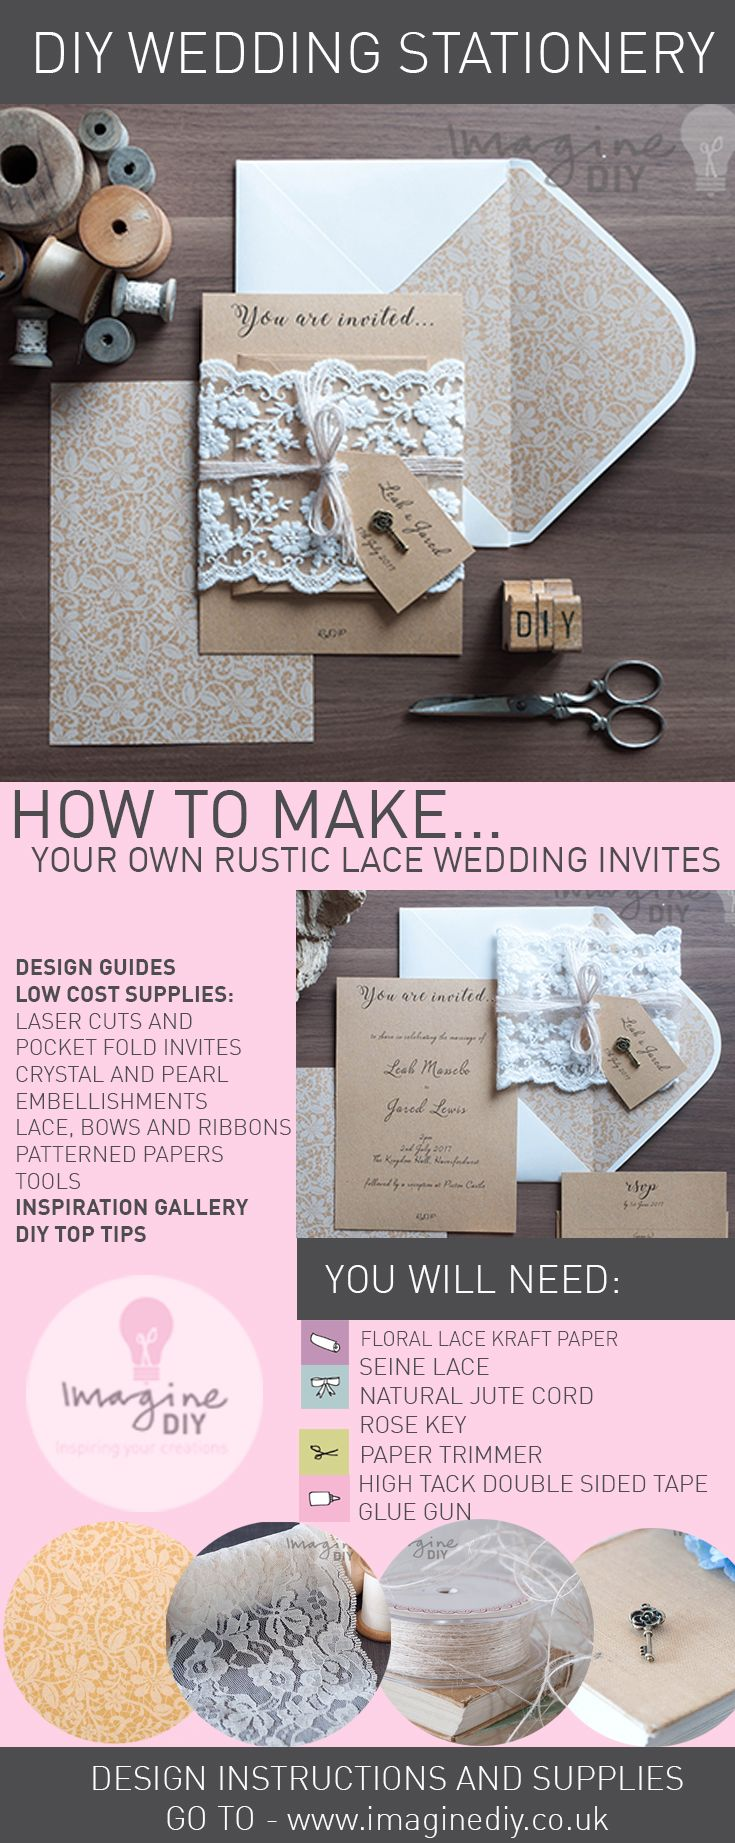 How to Make...Rustic Kraft and Lace Wedding Invitations | Diy ...